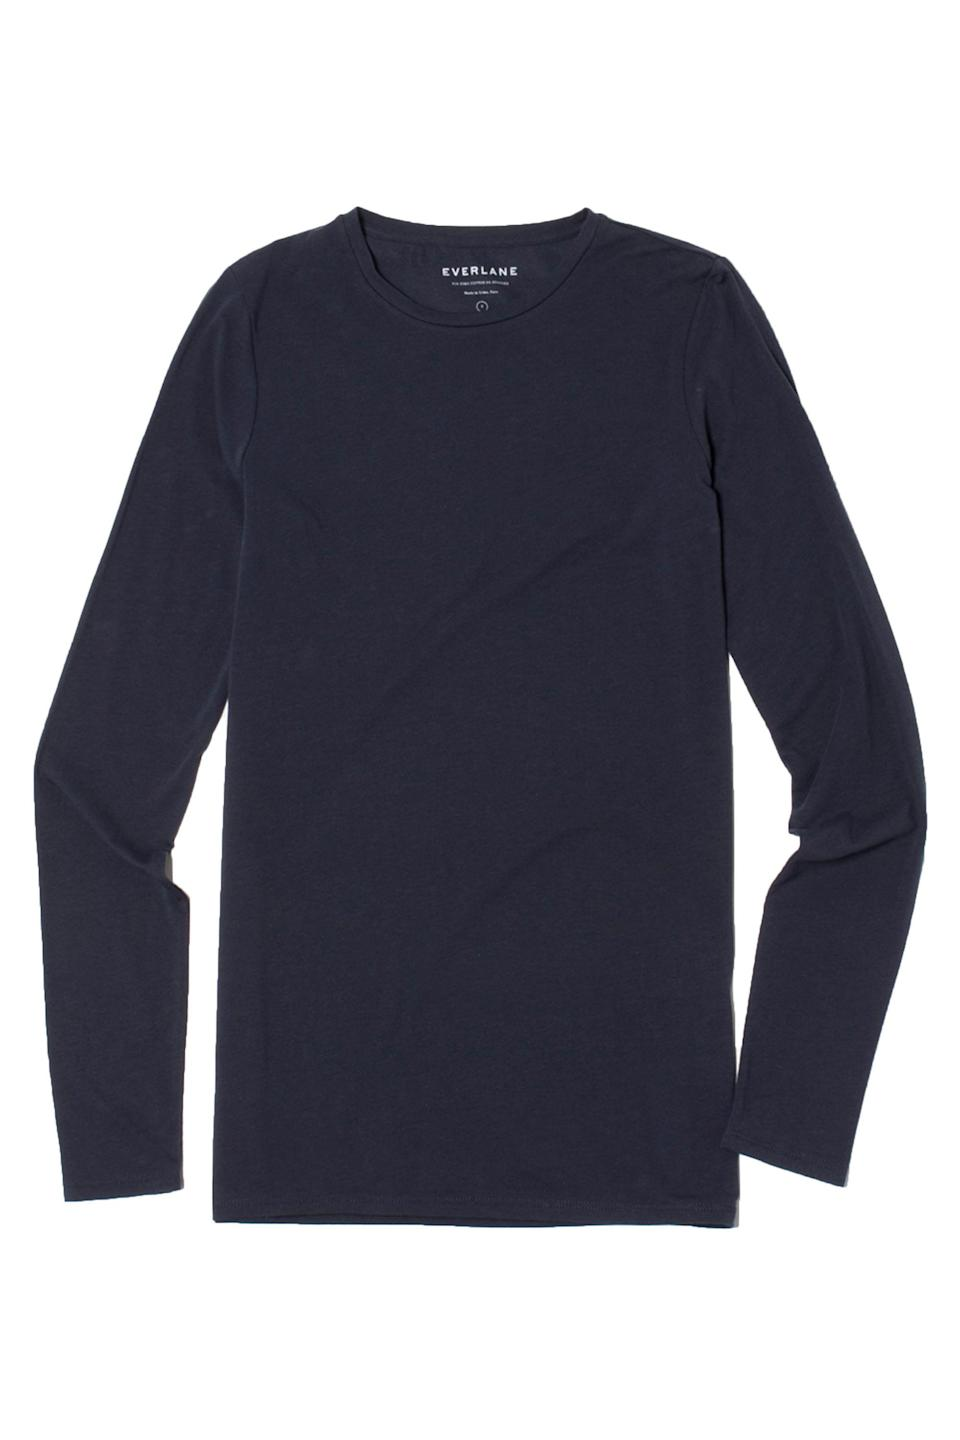 "<p><strong>Everlane</strong></p><p>nordstromrack.com</p><p><strong>$15.97</strong></p><p><a href=""https://go.redirectingat.com?id=74968X1596630&url=https%3A%2F%2Fwww.nordstromrack.com%2Fevents%2F387347%2Fproducts%2F3236205&sref=https%3A%2F%2Fwww.elle.com%2Ffashion%2Fshopping%2Fg33468956%2Feverlane-nordstrom-rack-sale%2F"" rel=""nofollow noopener"" target=""_blank"" data-ylk=""slk:SHOP NOW"" class=""link rapid-noclick-resp"">SHOP NOW</a></p><p><strong><del>$32</del> $15.97 (50% off) </strong></p><p>Soft and flattering. Enough said. </p>"